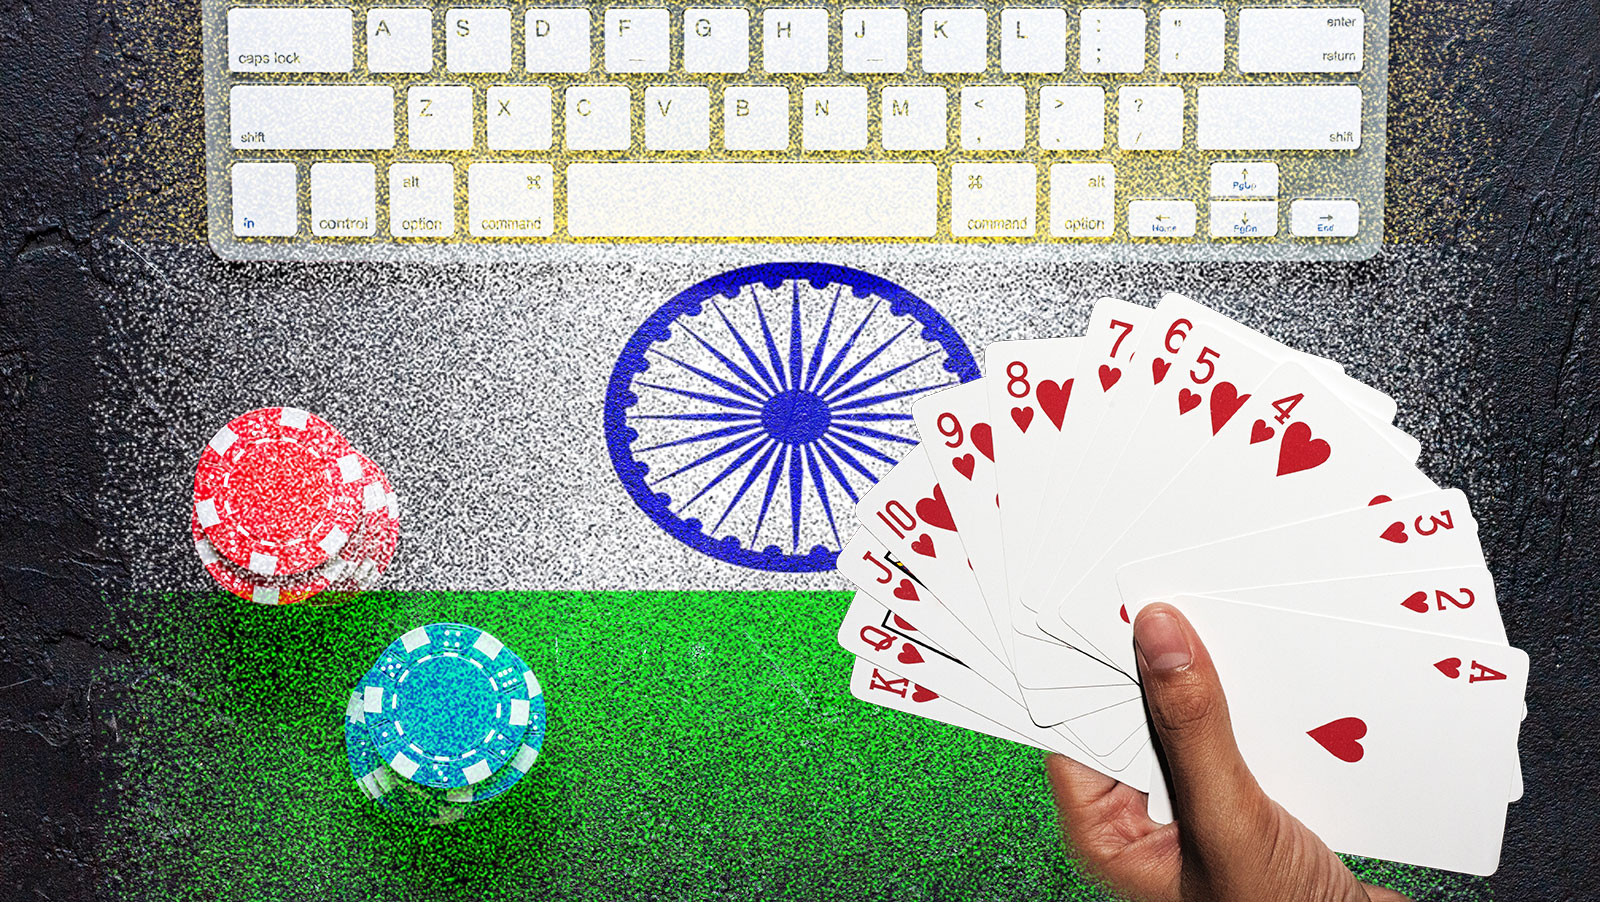 Rummy companies move to Tamil Nadu as challenges to Telangana's decrees continue